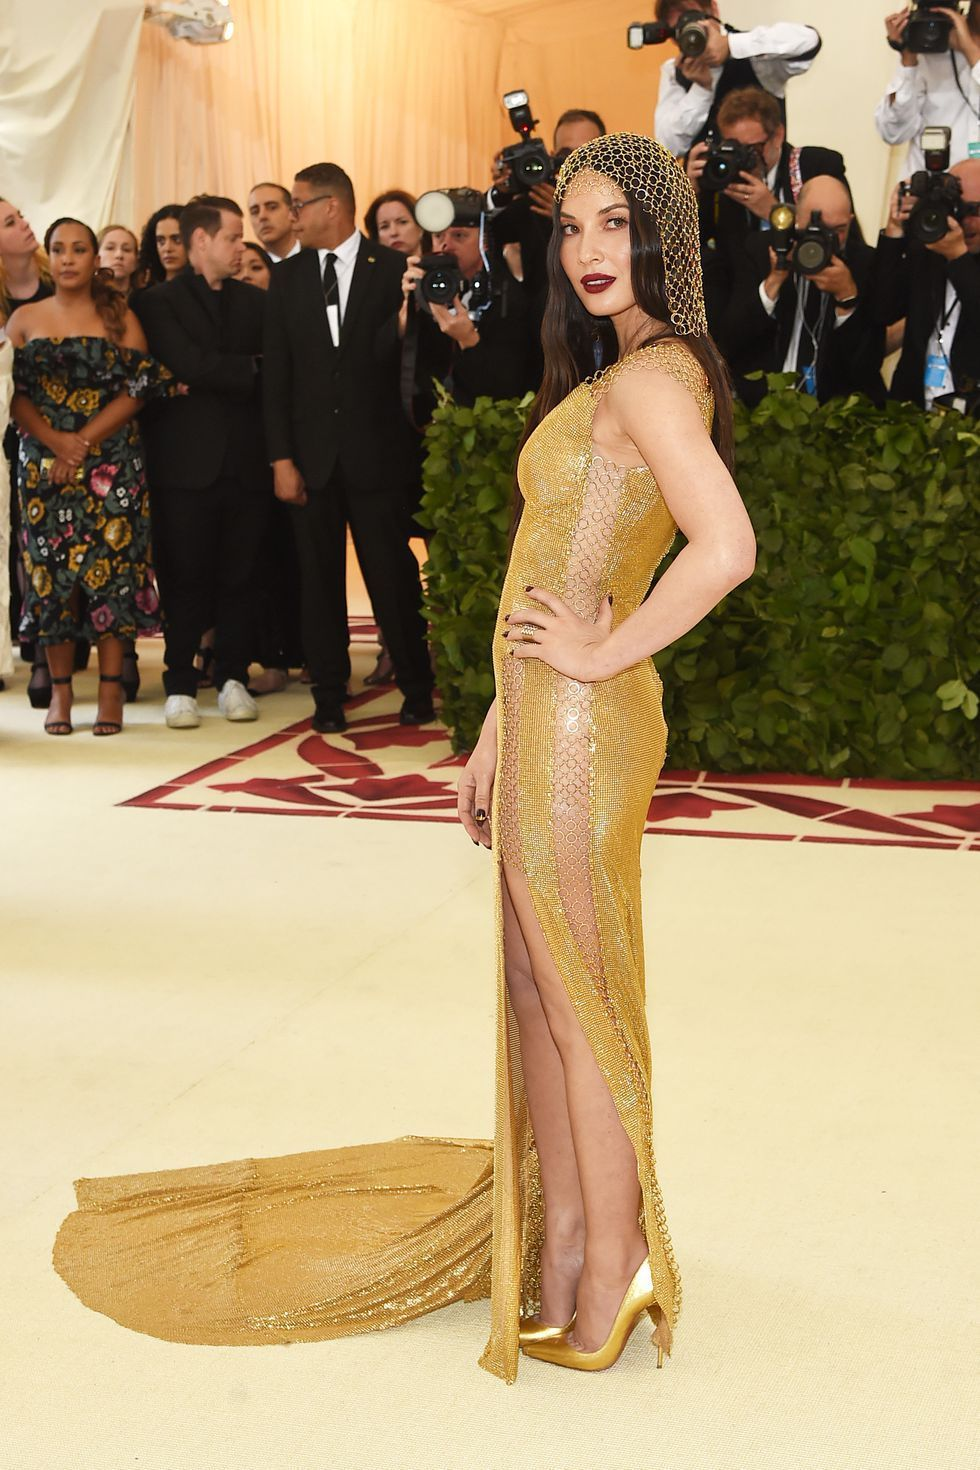 c34bd7c6ab The Most Scandalous Met Gala Dresses of All Time